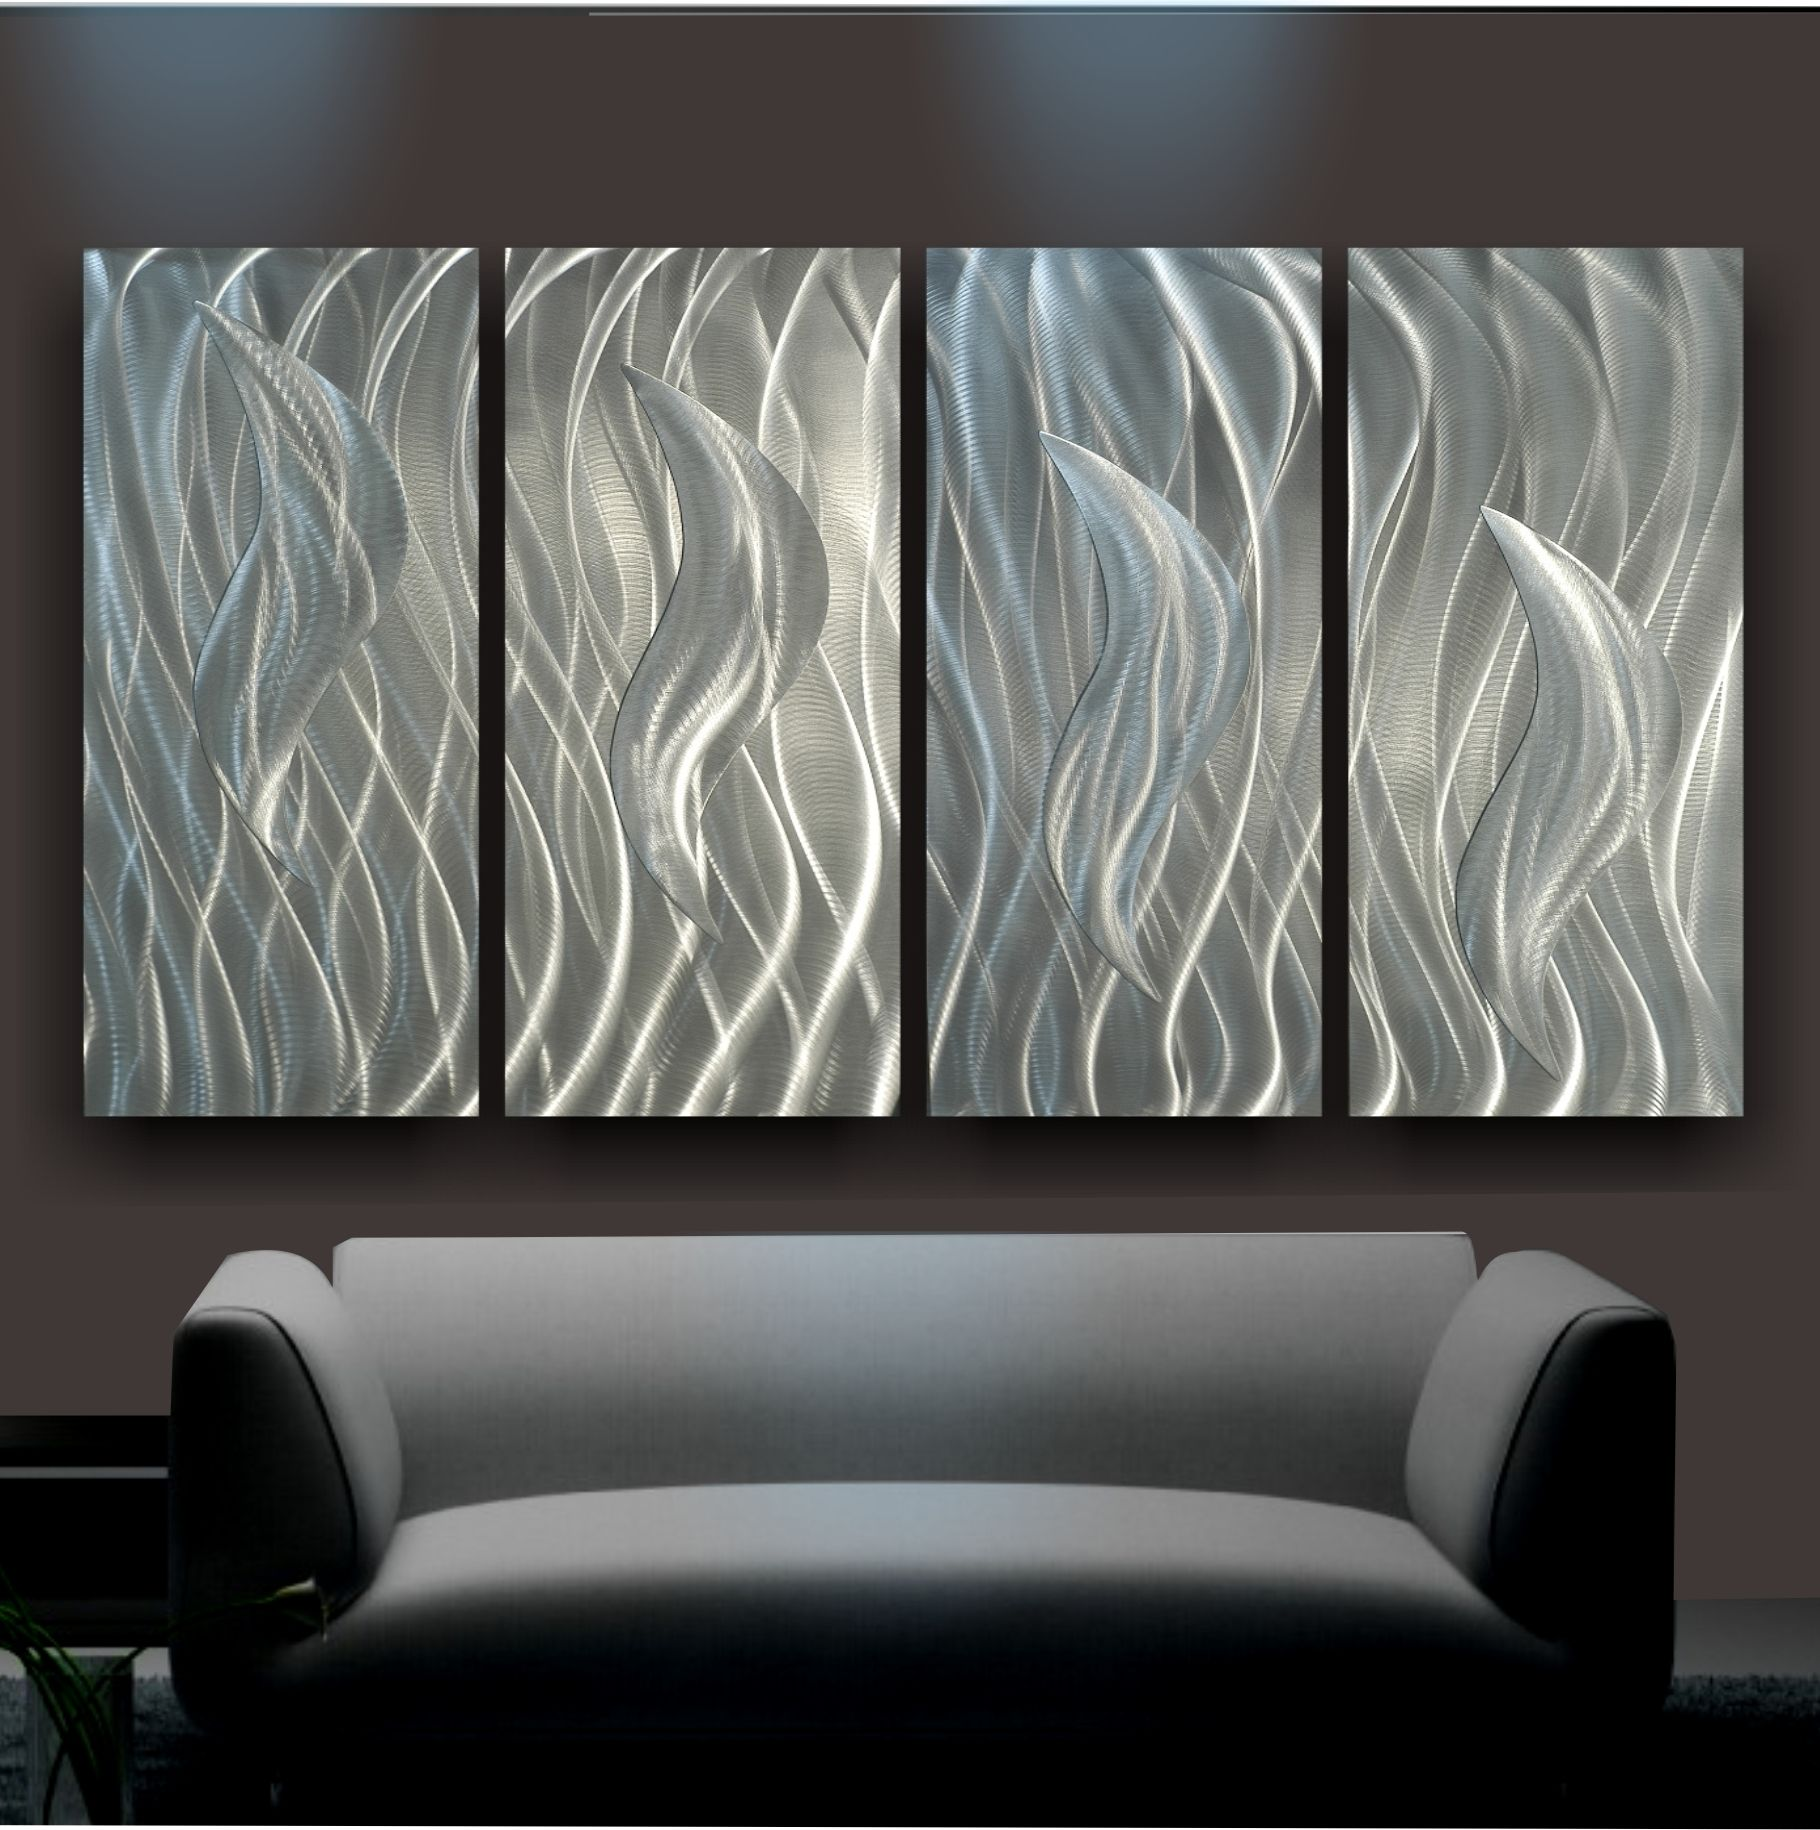 Metal Artwork Home Decor Steel Wall Surface Fine Art Is A Contemporary Sort Of Art